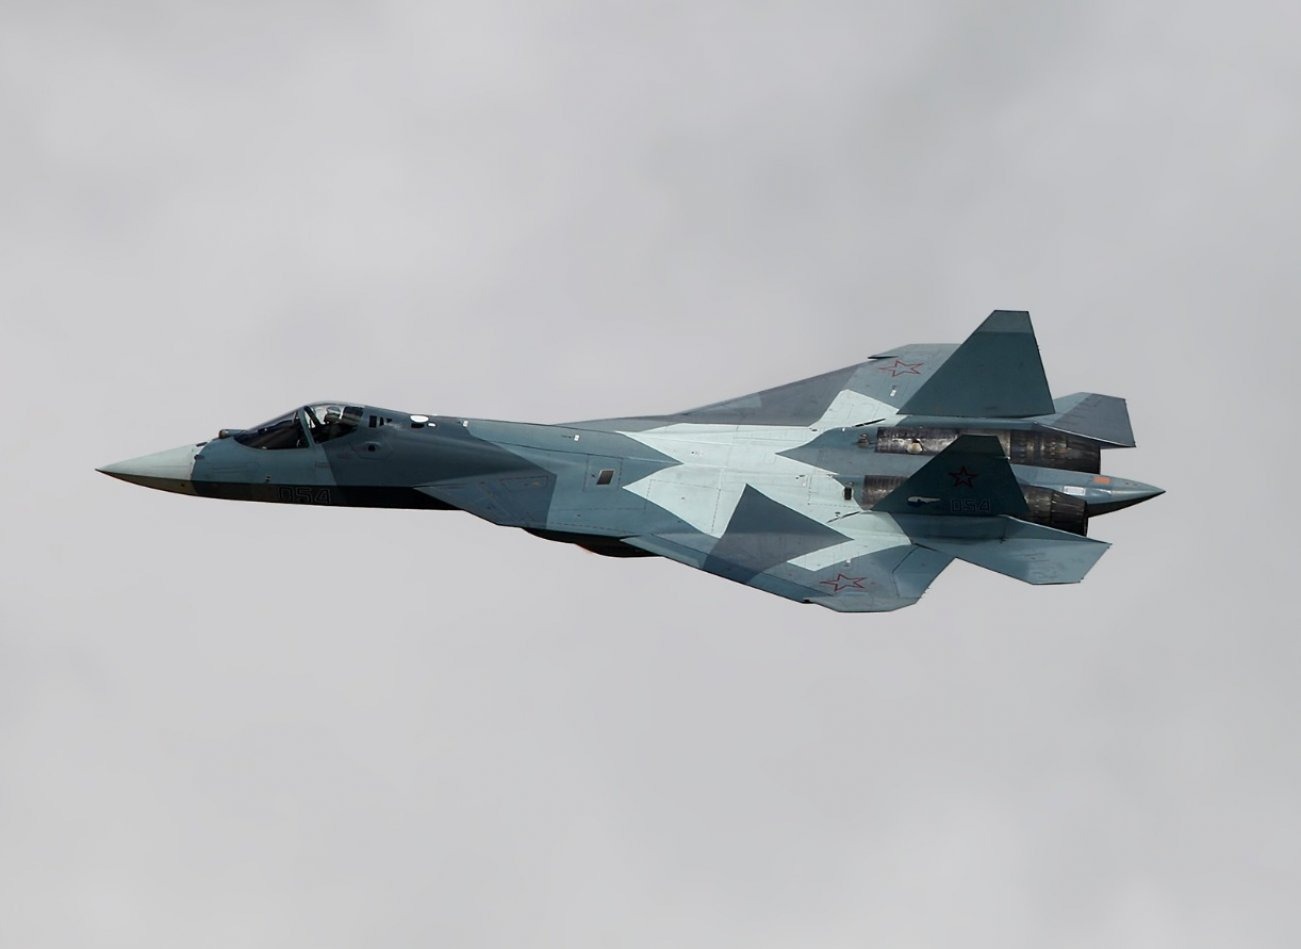 Russia's Su-57 Could Tip the Air Power Balance in Moscow's Favor